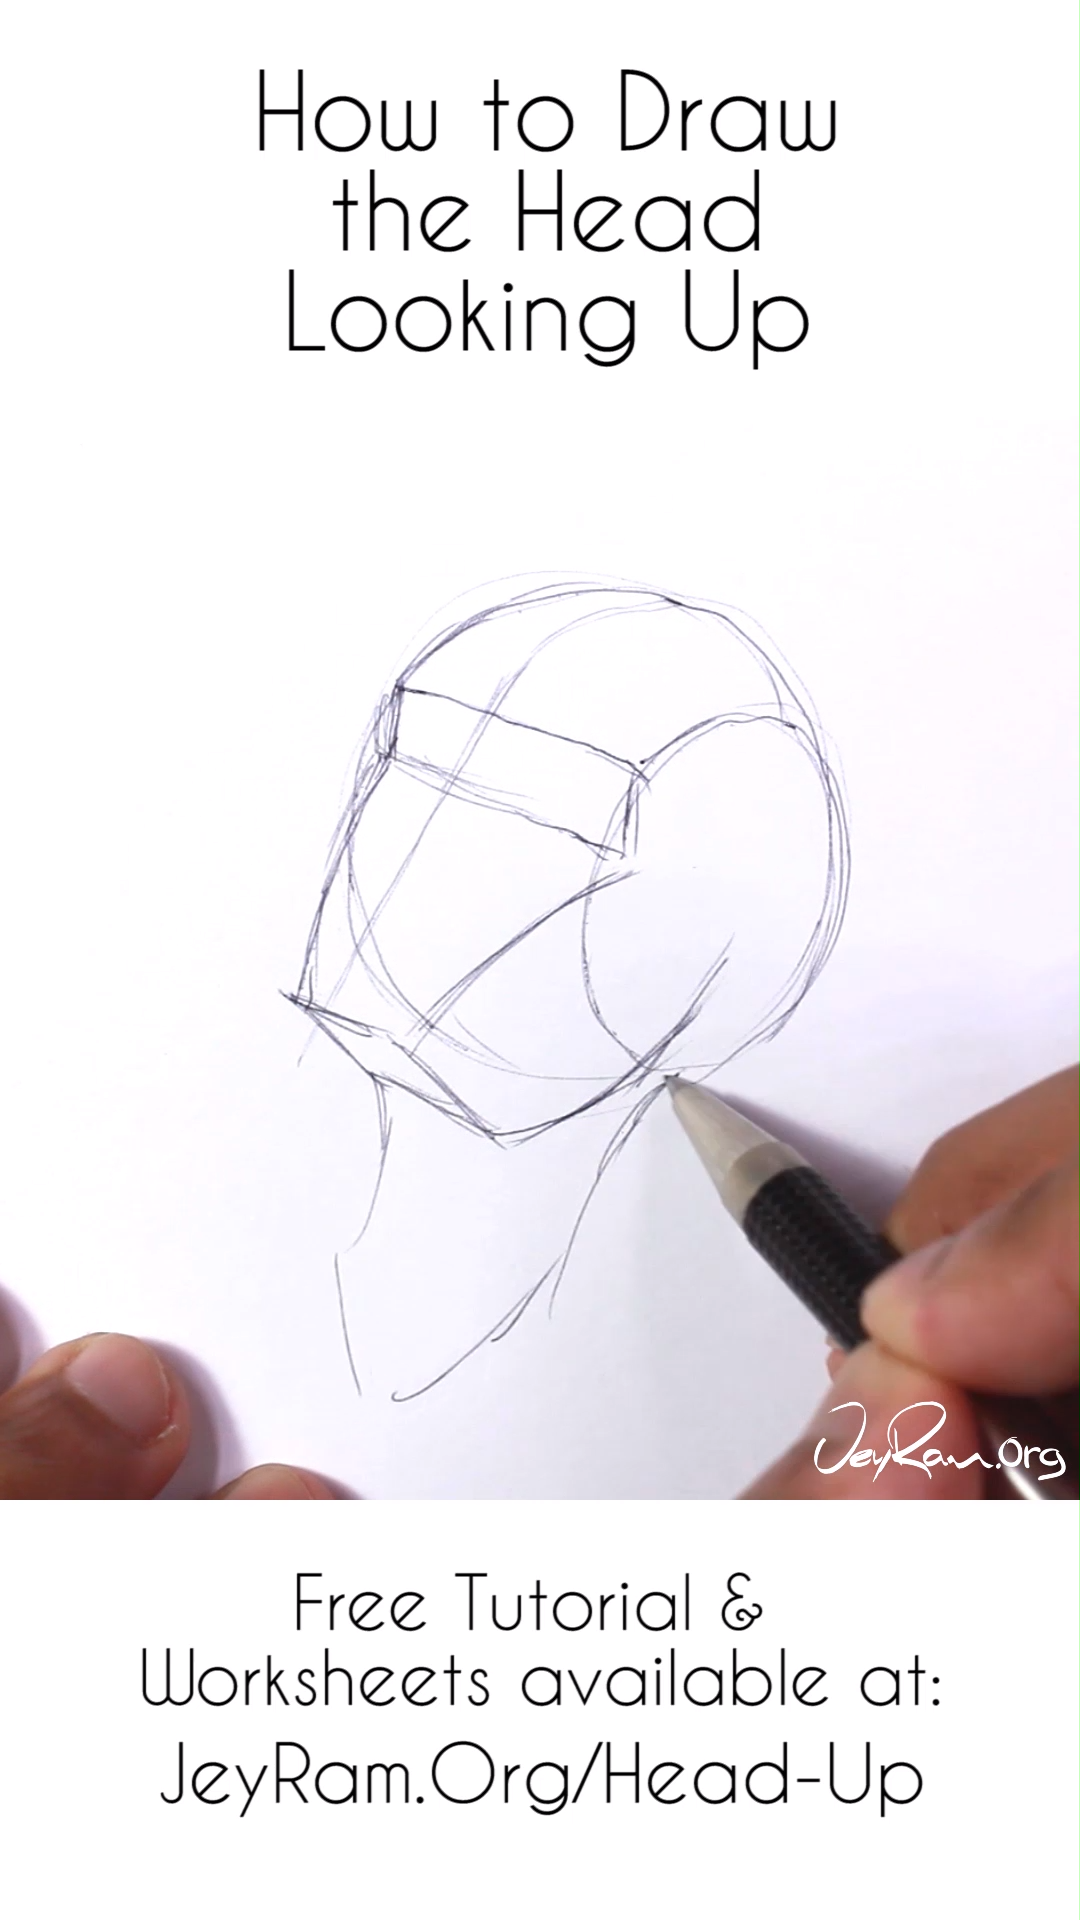 How to Draw the Head Looking Up or as Seen from Below